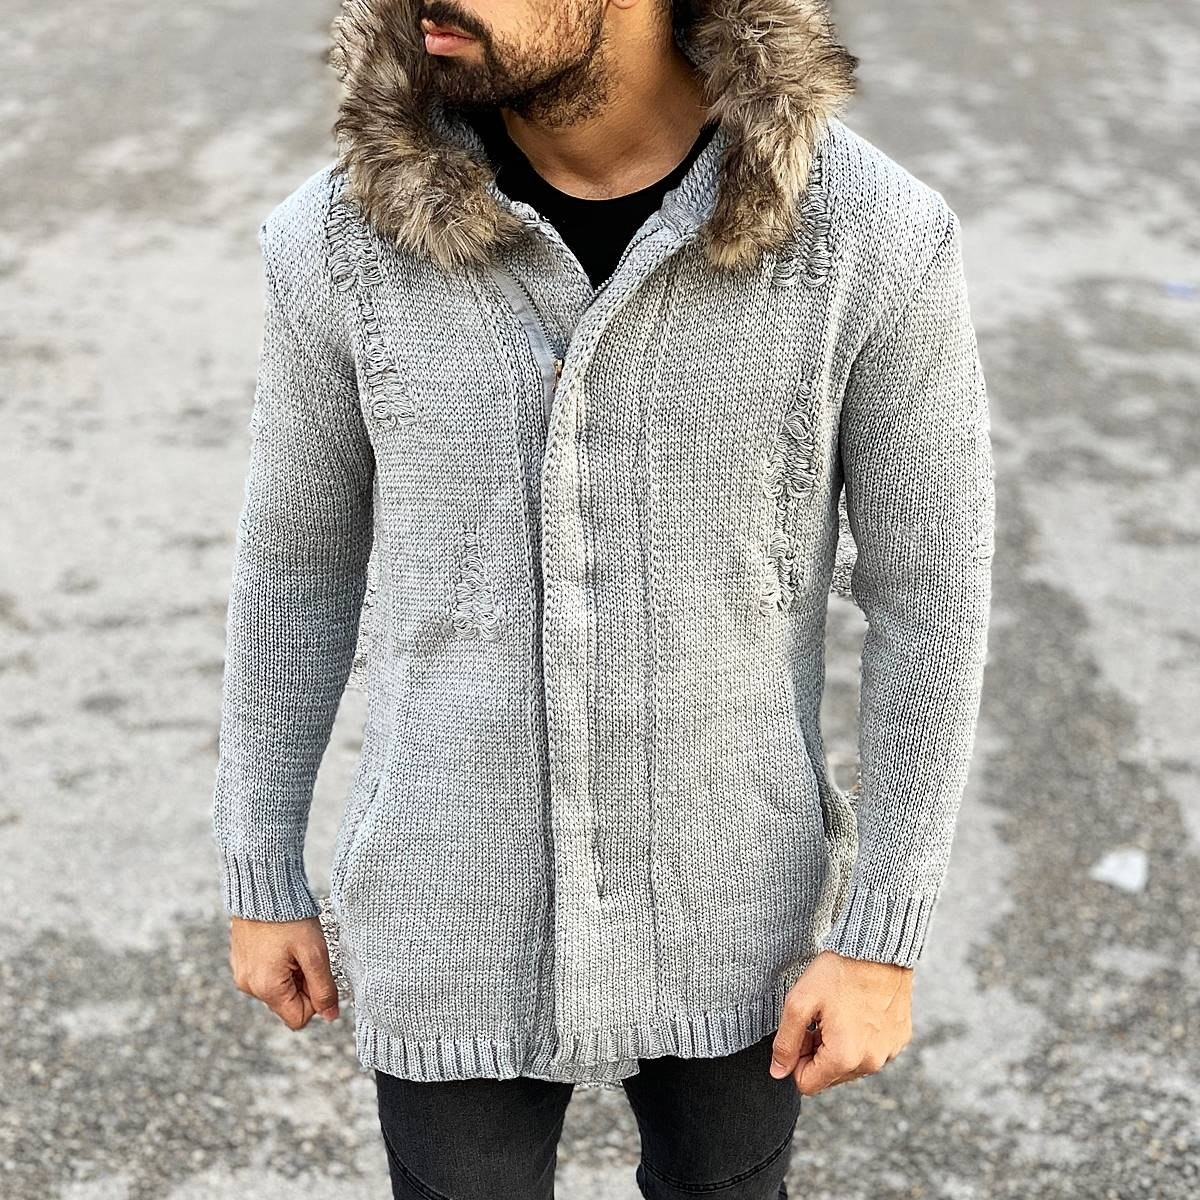 Rough Pattern Fur-Hood Cardigan Jacket in Grey Mv Premium Brand - 2